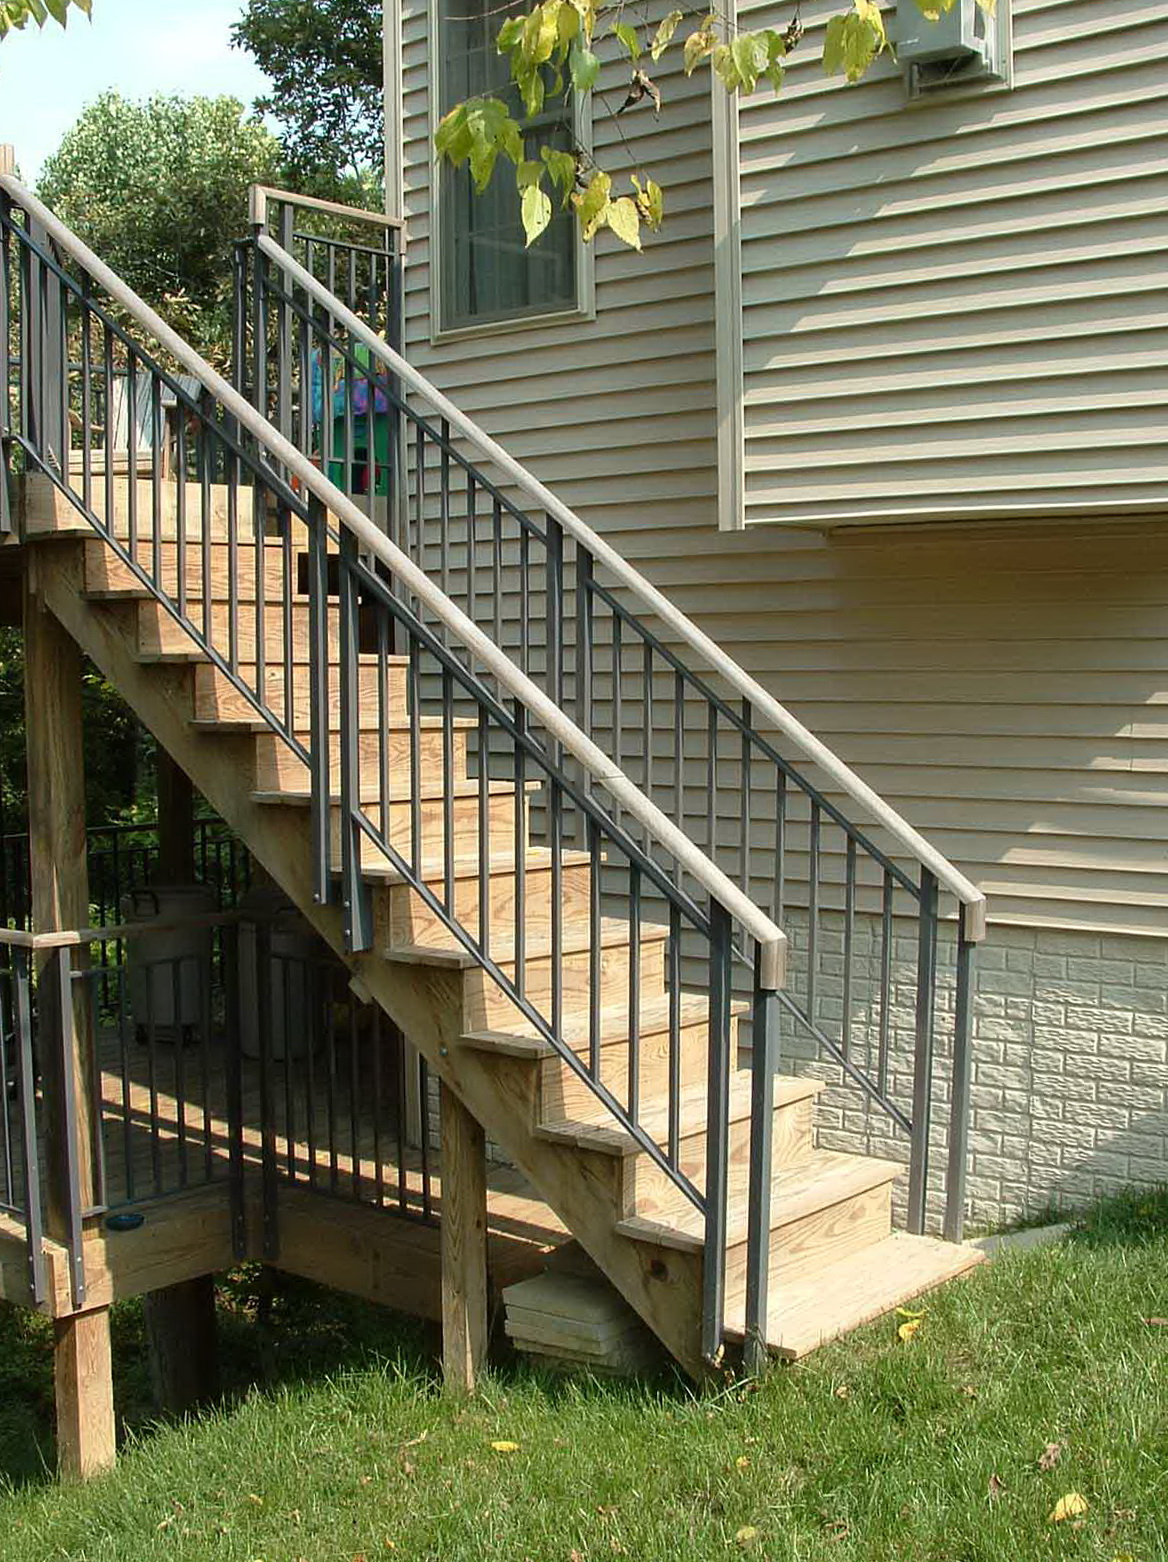 Aluminum Railings For Decks Salt Air